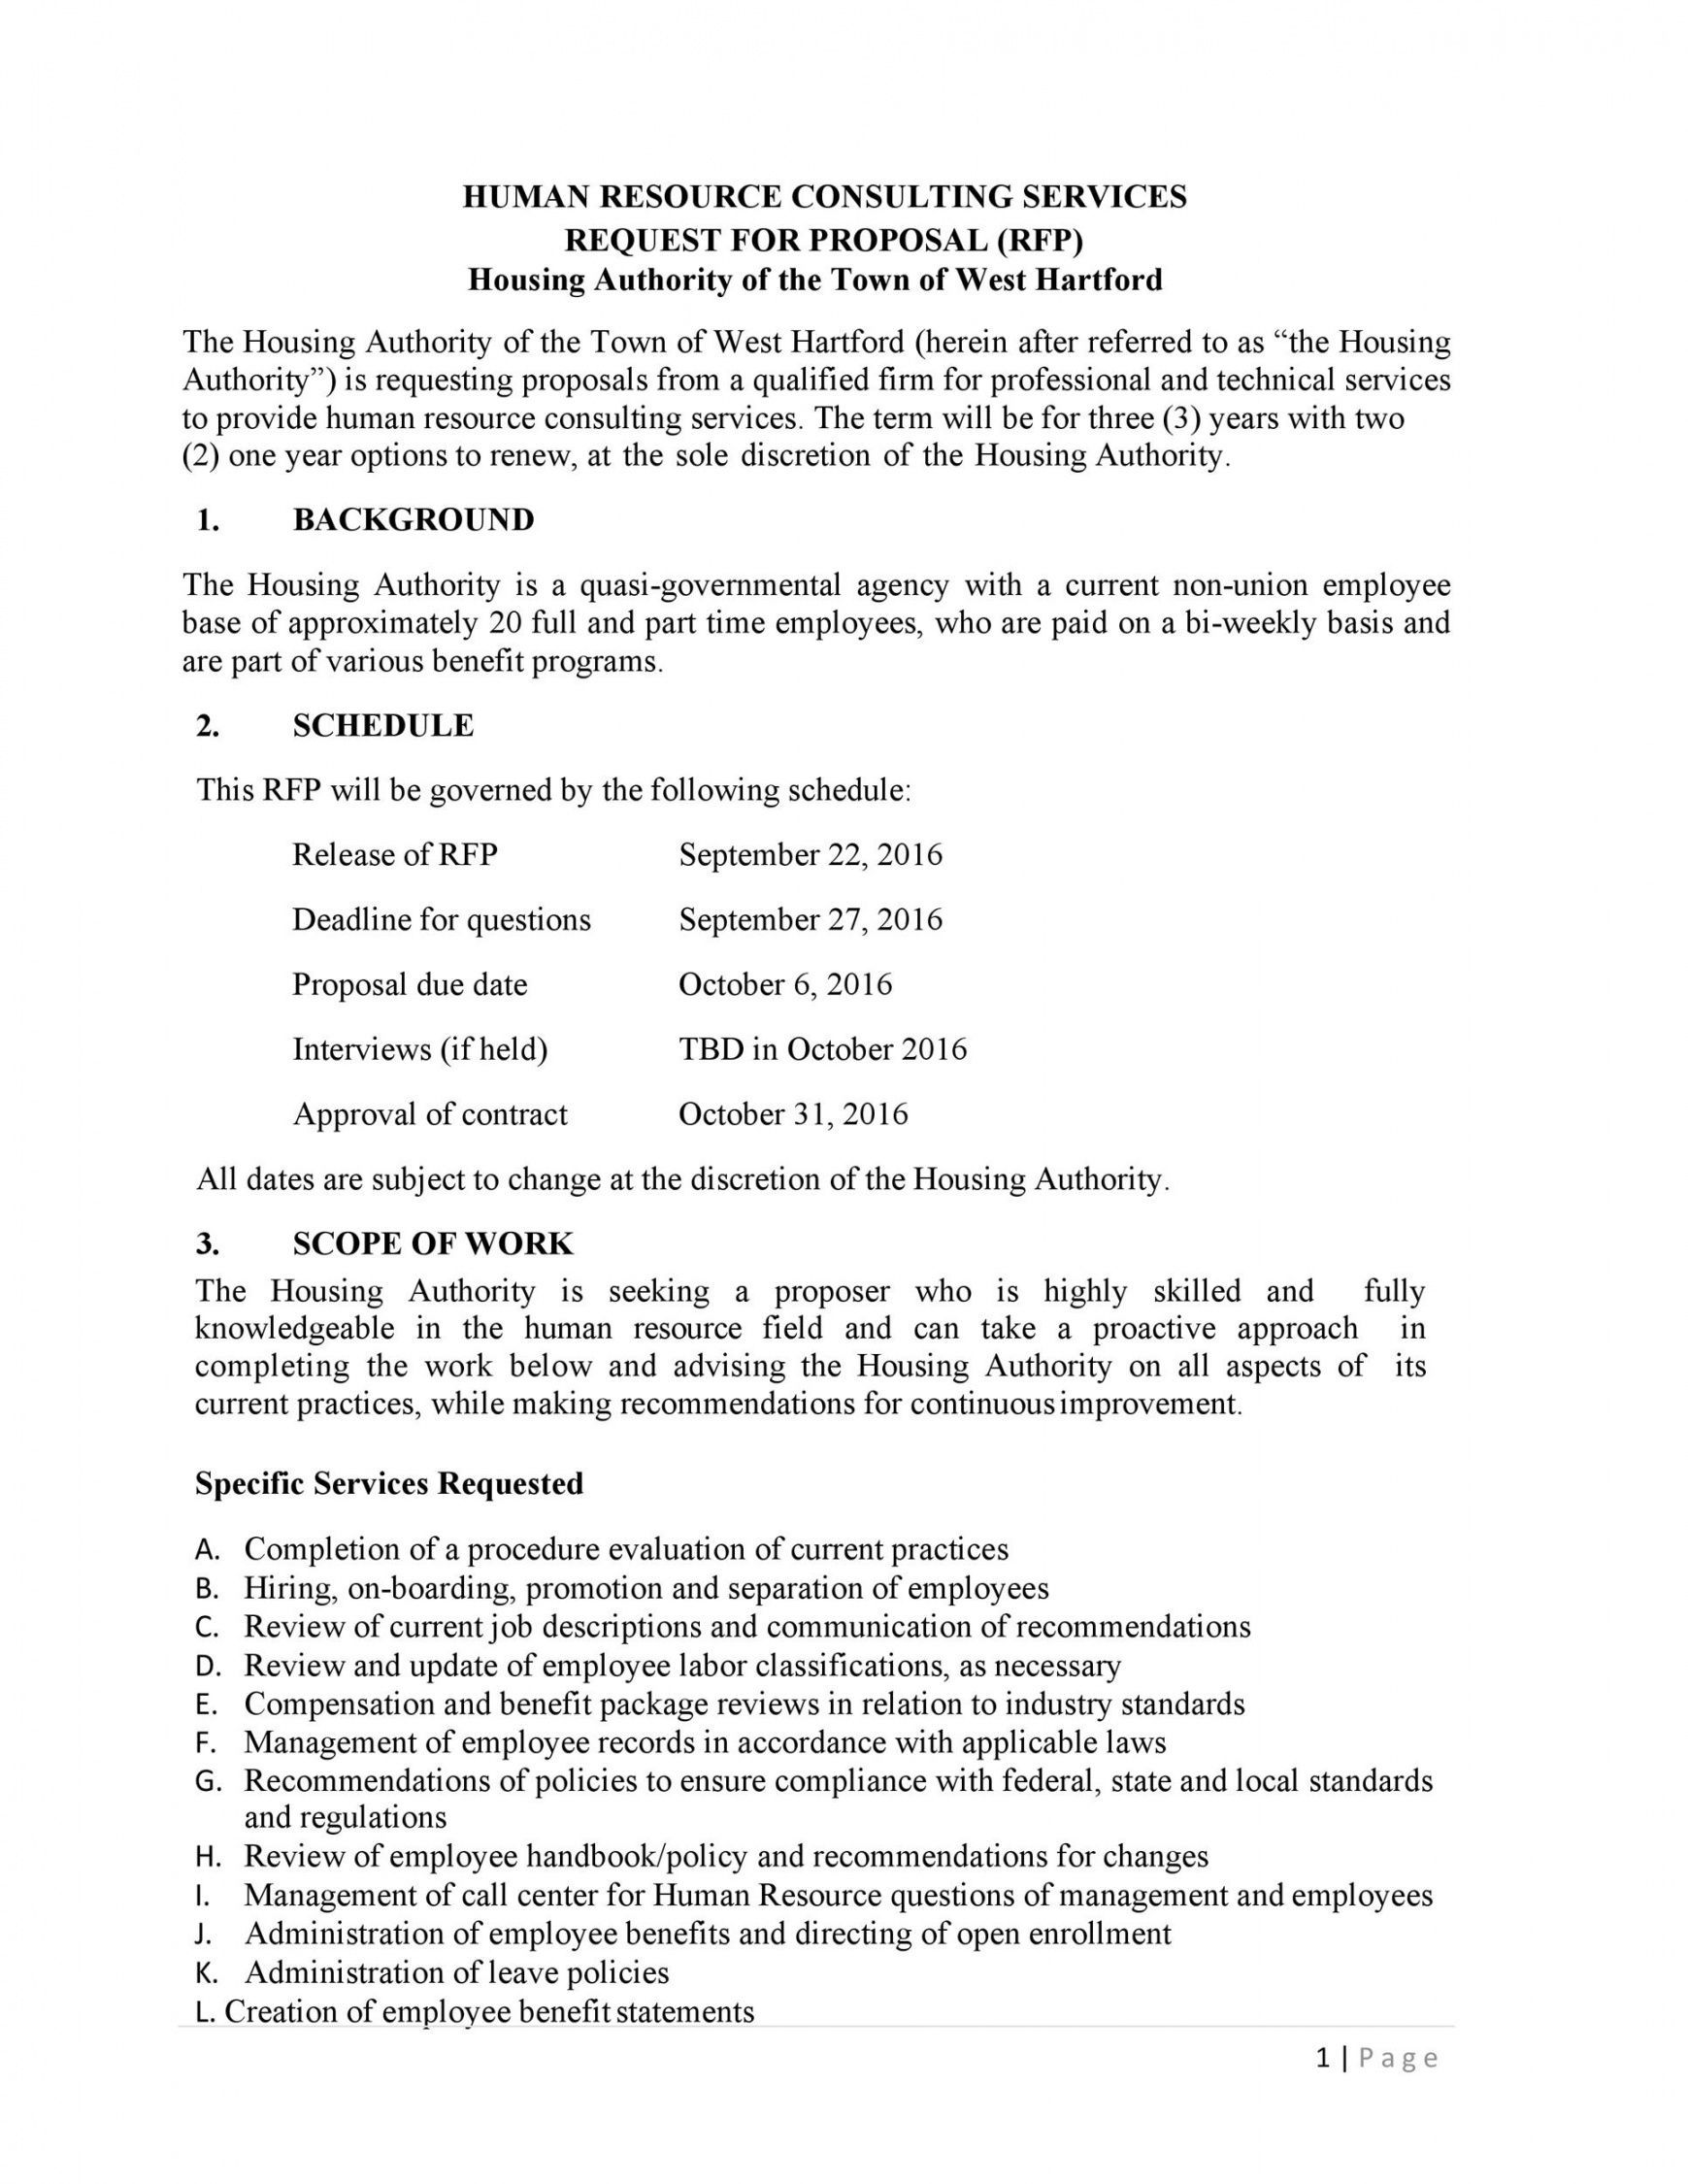 Human Resources Consulting Proposal Template Proposal Templates Proposal Human Resources